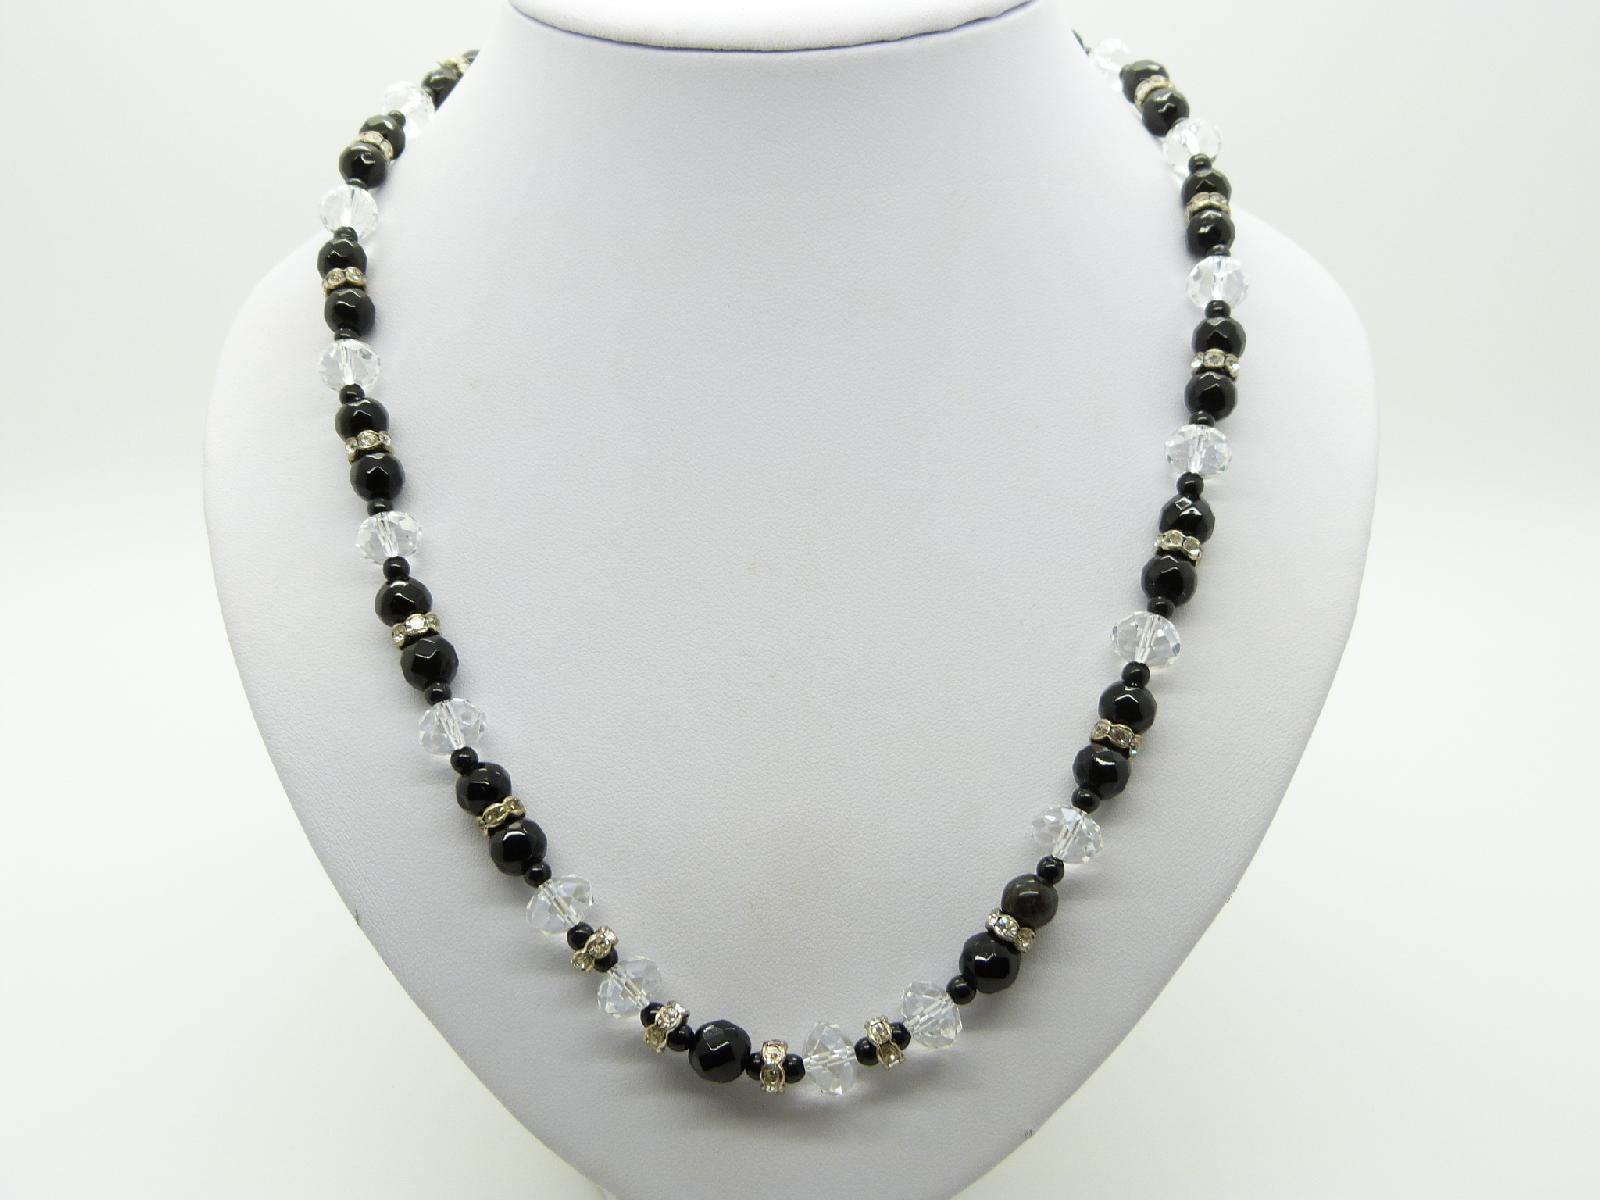 Vintage 50s Black and White Crystal Bead Necklace with Diamantes 58cms